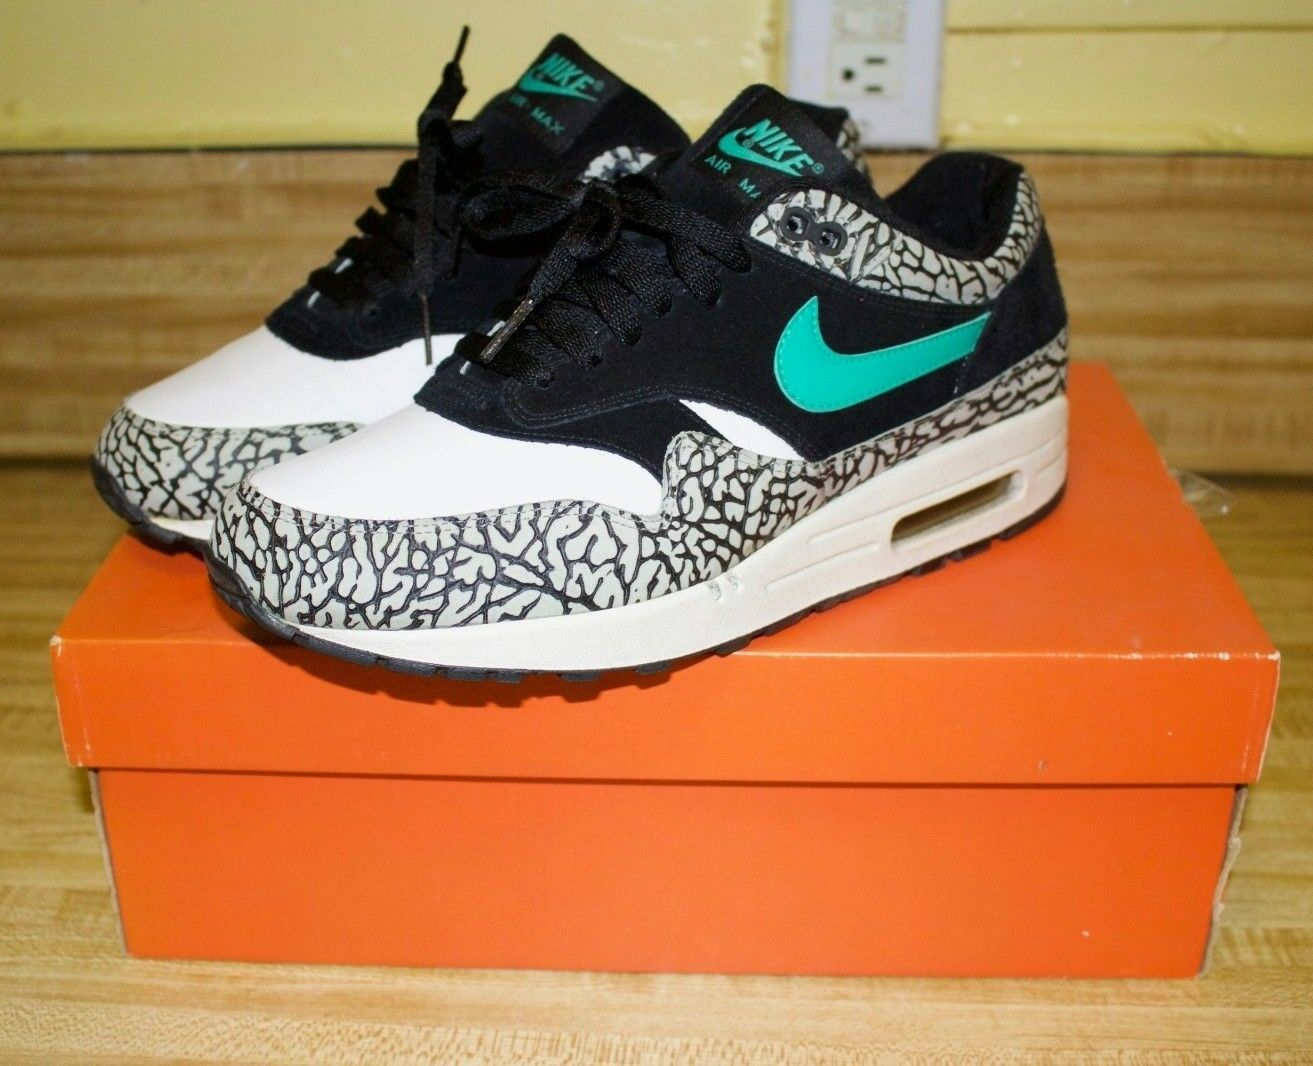 2007 Nike Air Max 1 B ATMOS Elephant Size 9 Patta Black White Teal